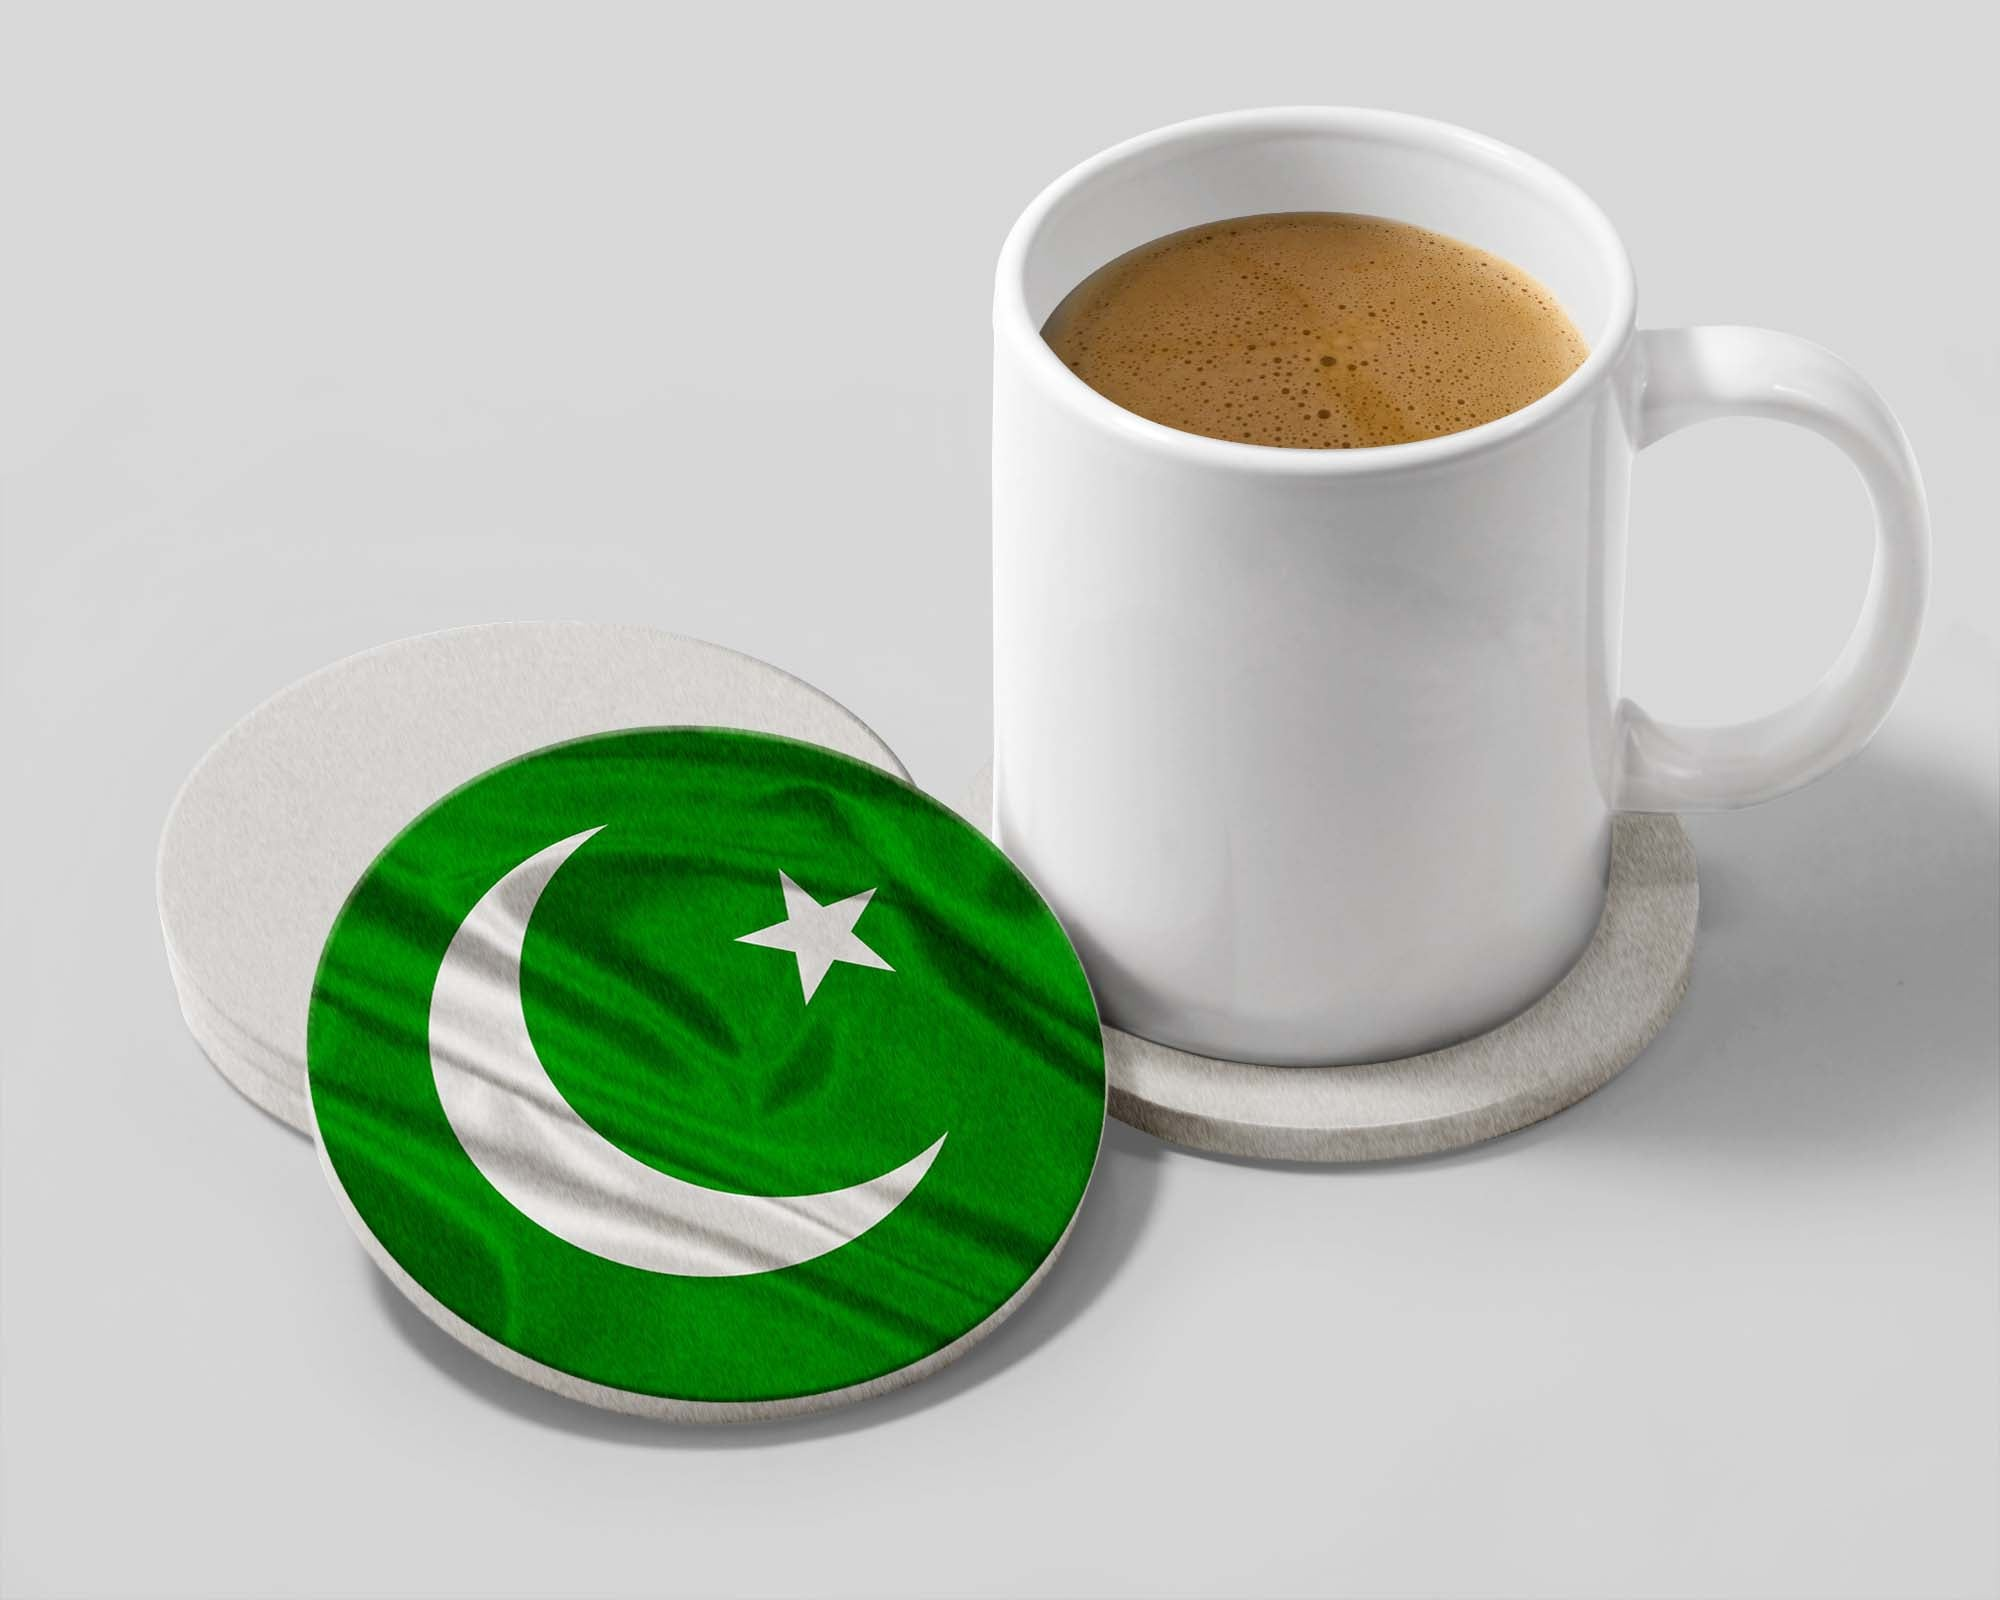 Pakistan Special Tea coasters